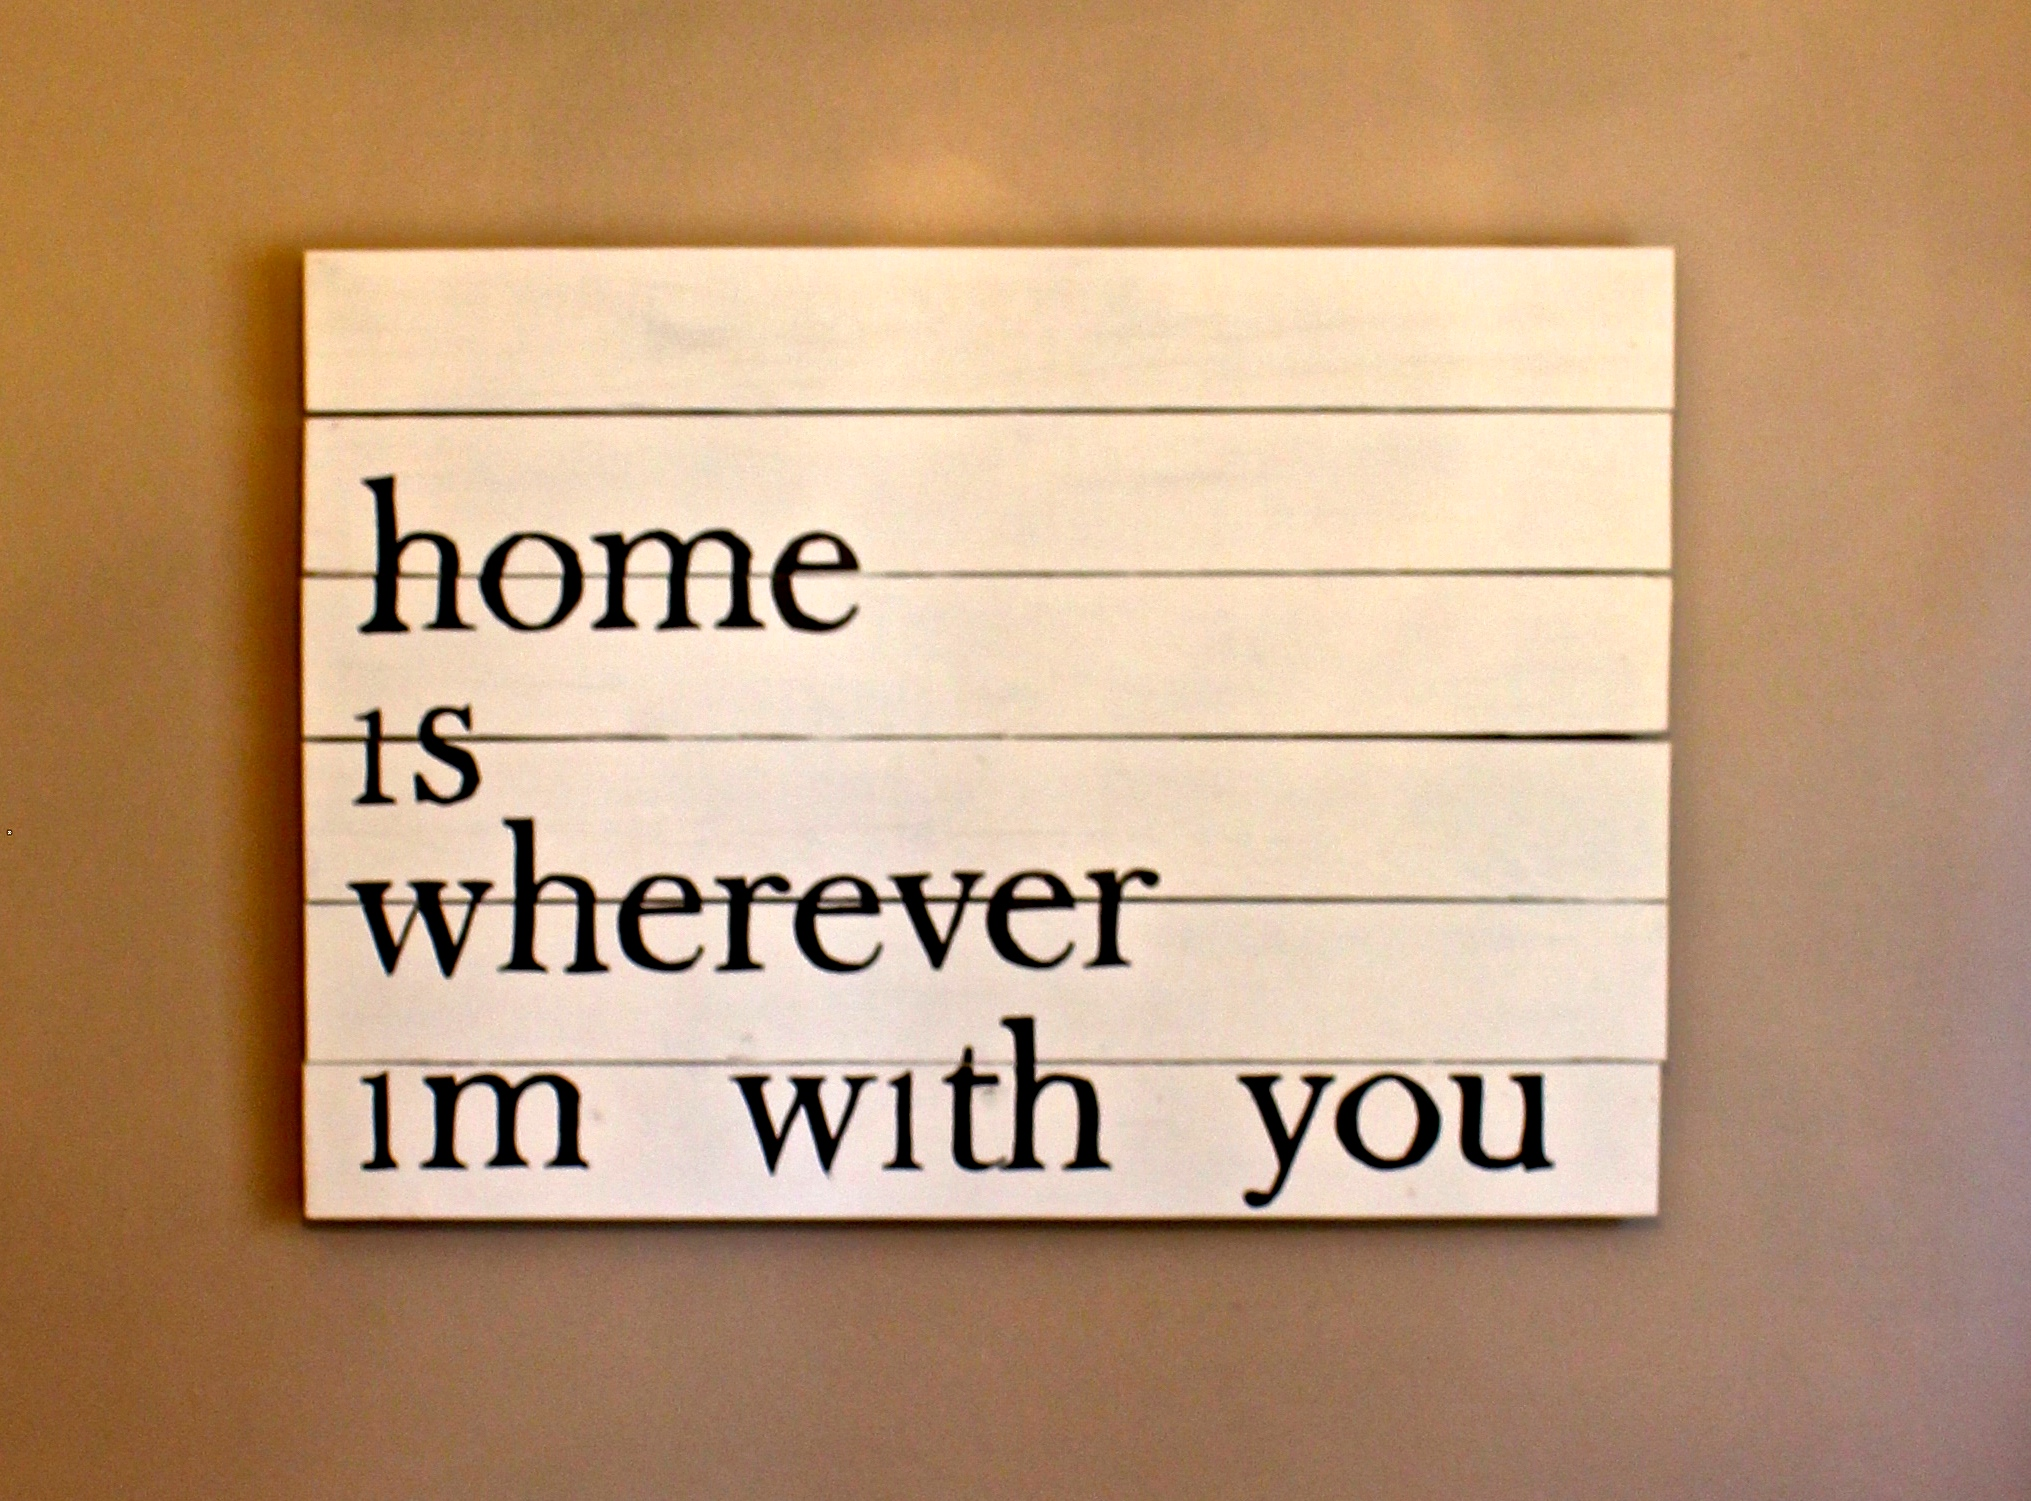 home wherever with you gift love